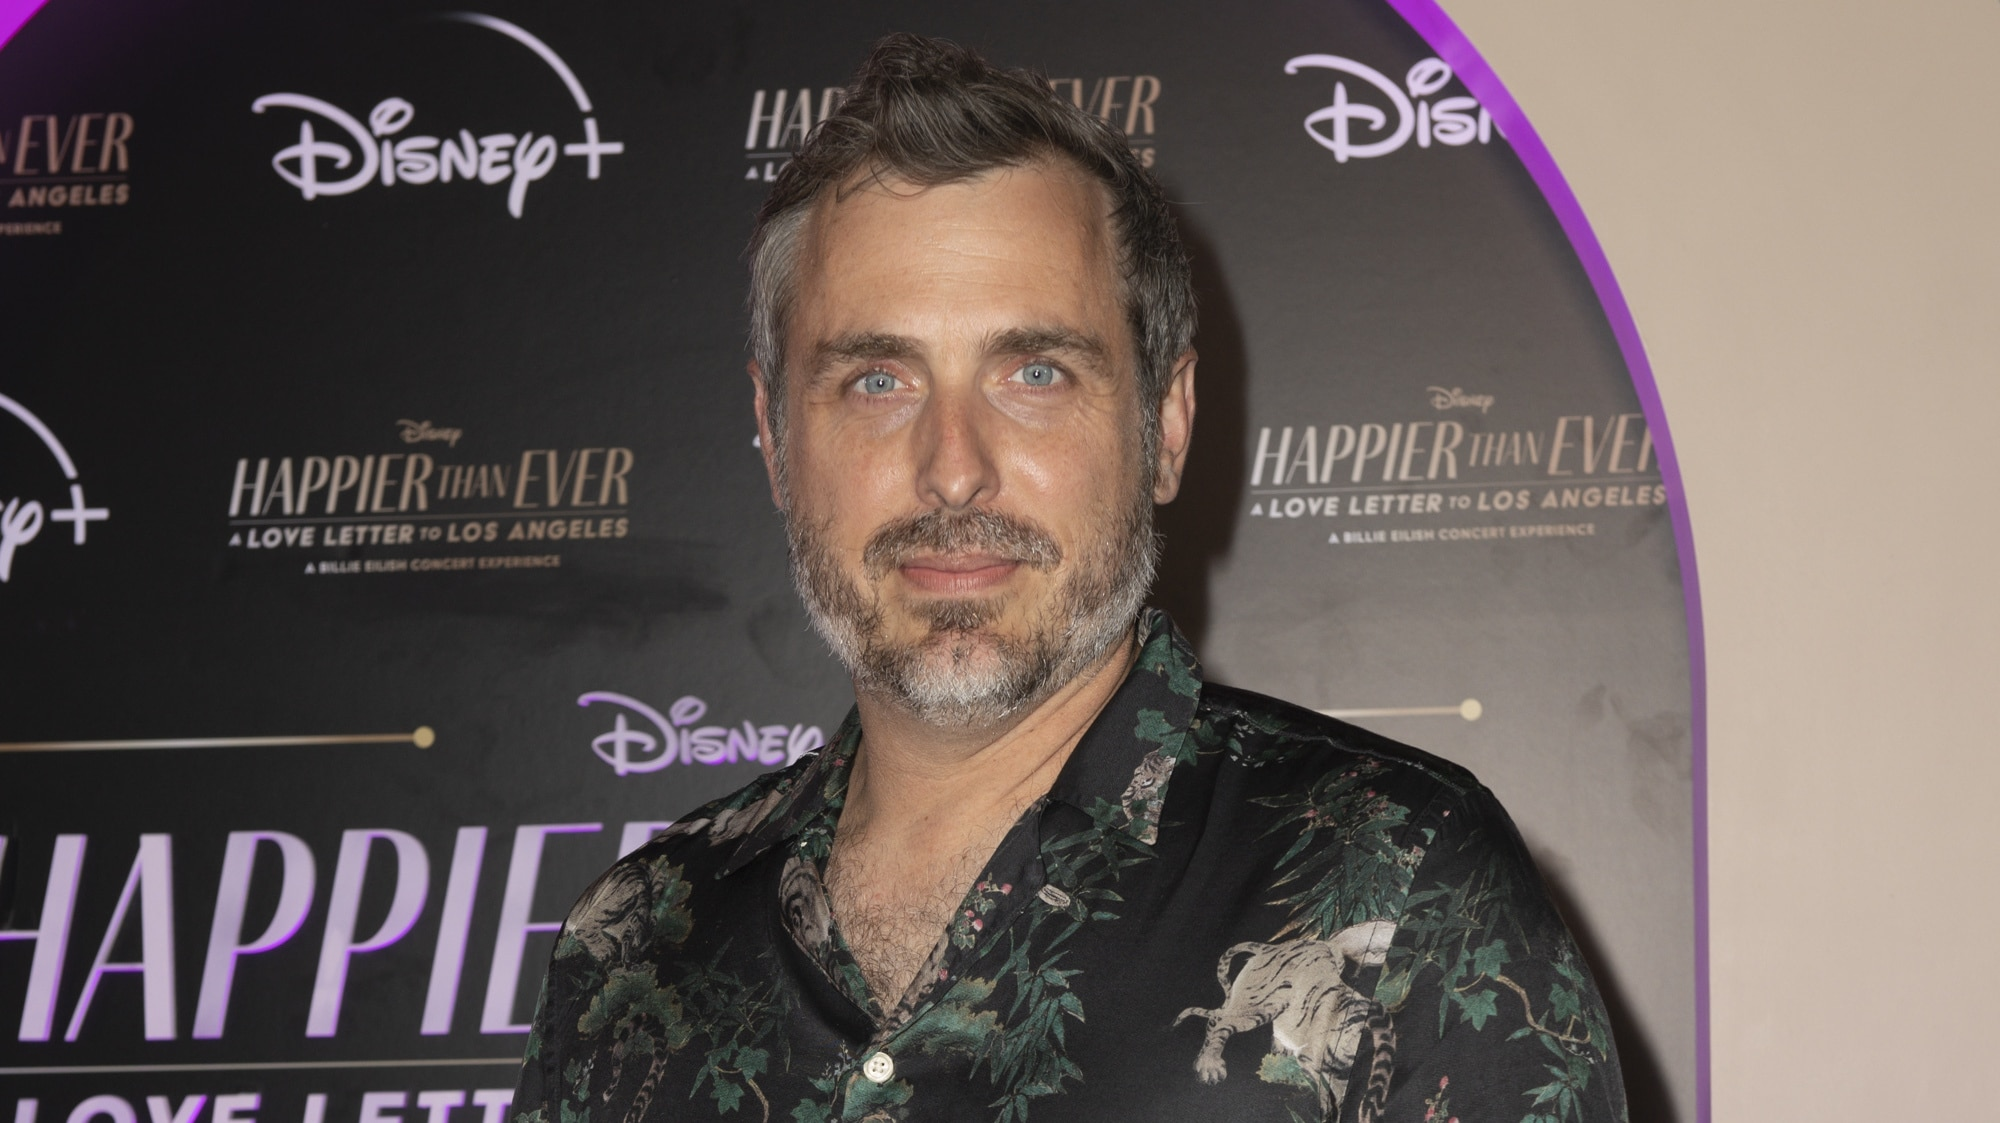 """HAPPIER THAN EVER: A LOVE LETTER TO LOS ANGELES - Stars celebrated at the drive-in world premiere of the Disney+ original film, """"Happier Than Ever: A Love Letter to Los Angeles,"""" a Billie Eilish concert experience, at The Grove in Los Angeles, Calif., Monday, August 30, 2021. (Disney/Kyusung Gong) PATRICK OSBORNE"""